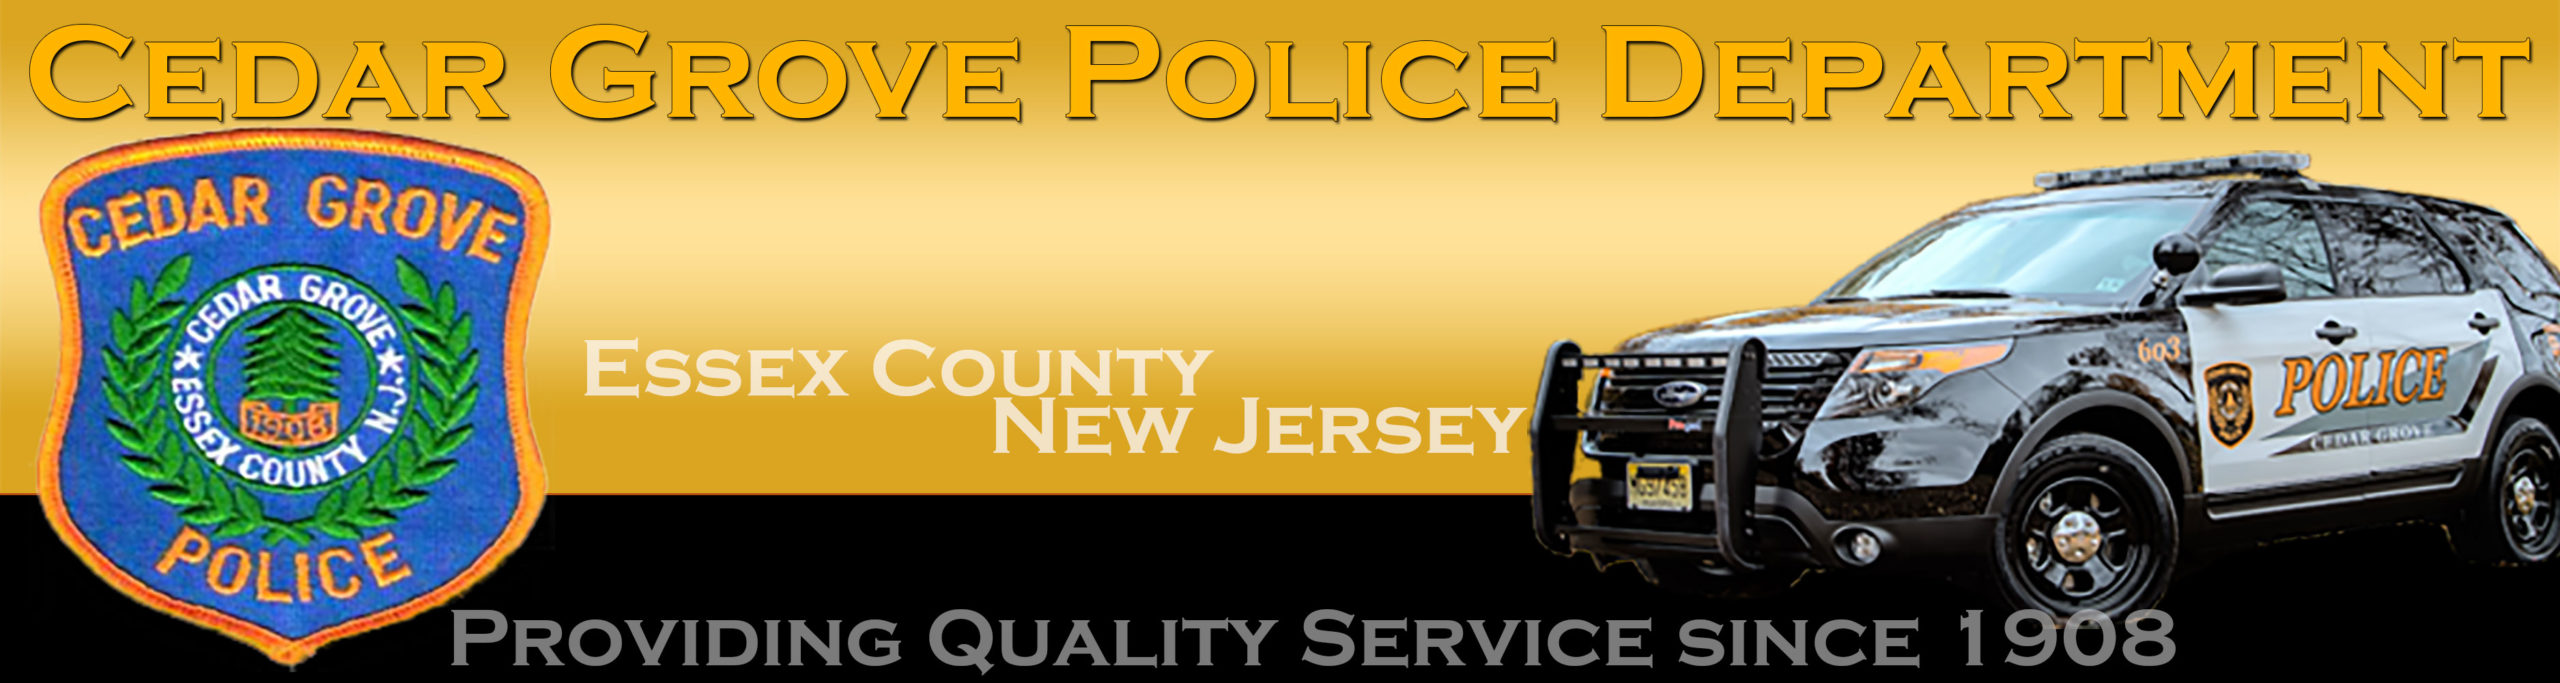 Cedar Grove Police Department